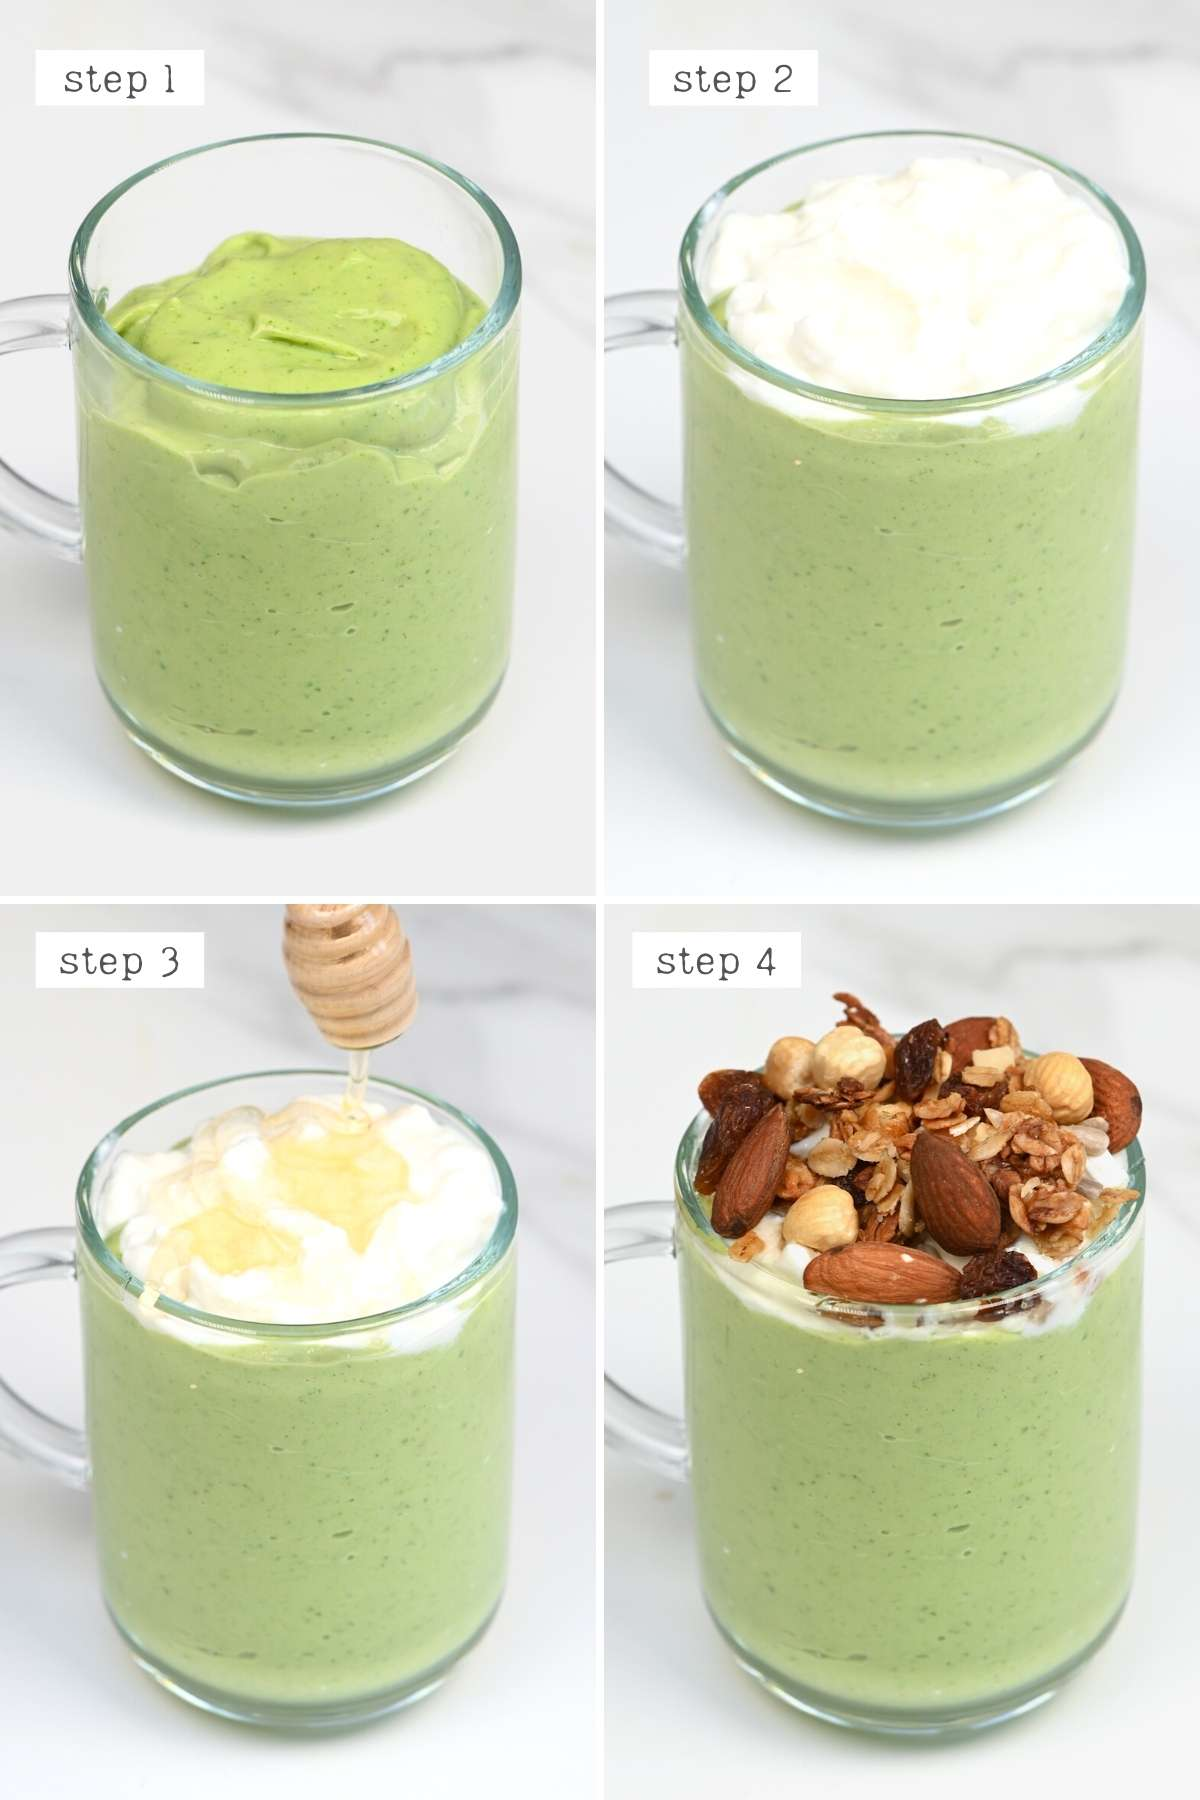 Steps for topping an avocado smoothie